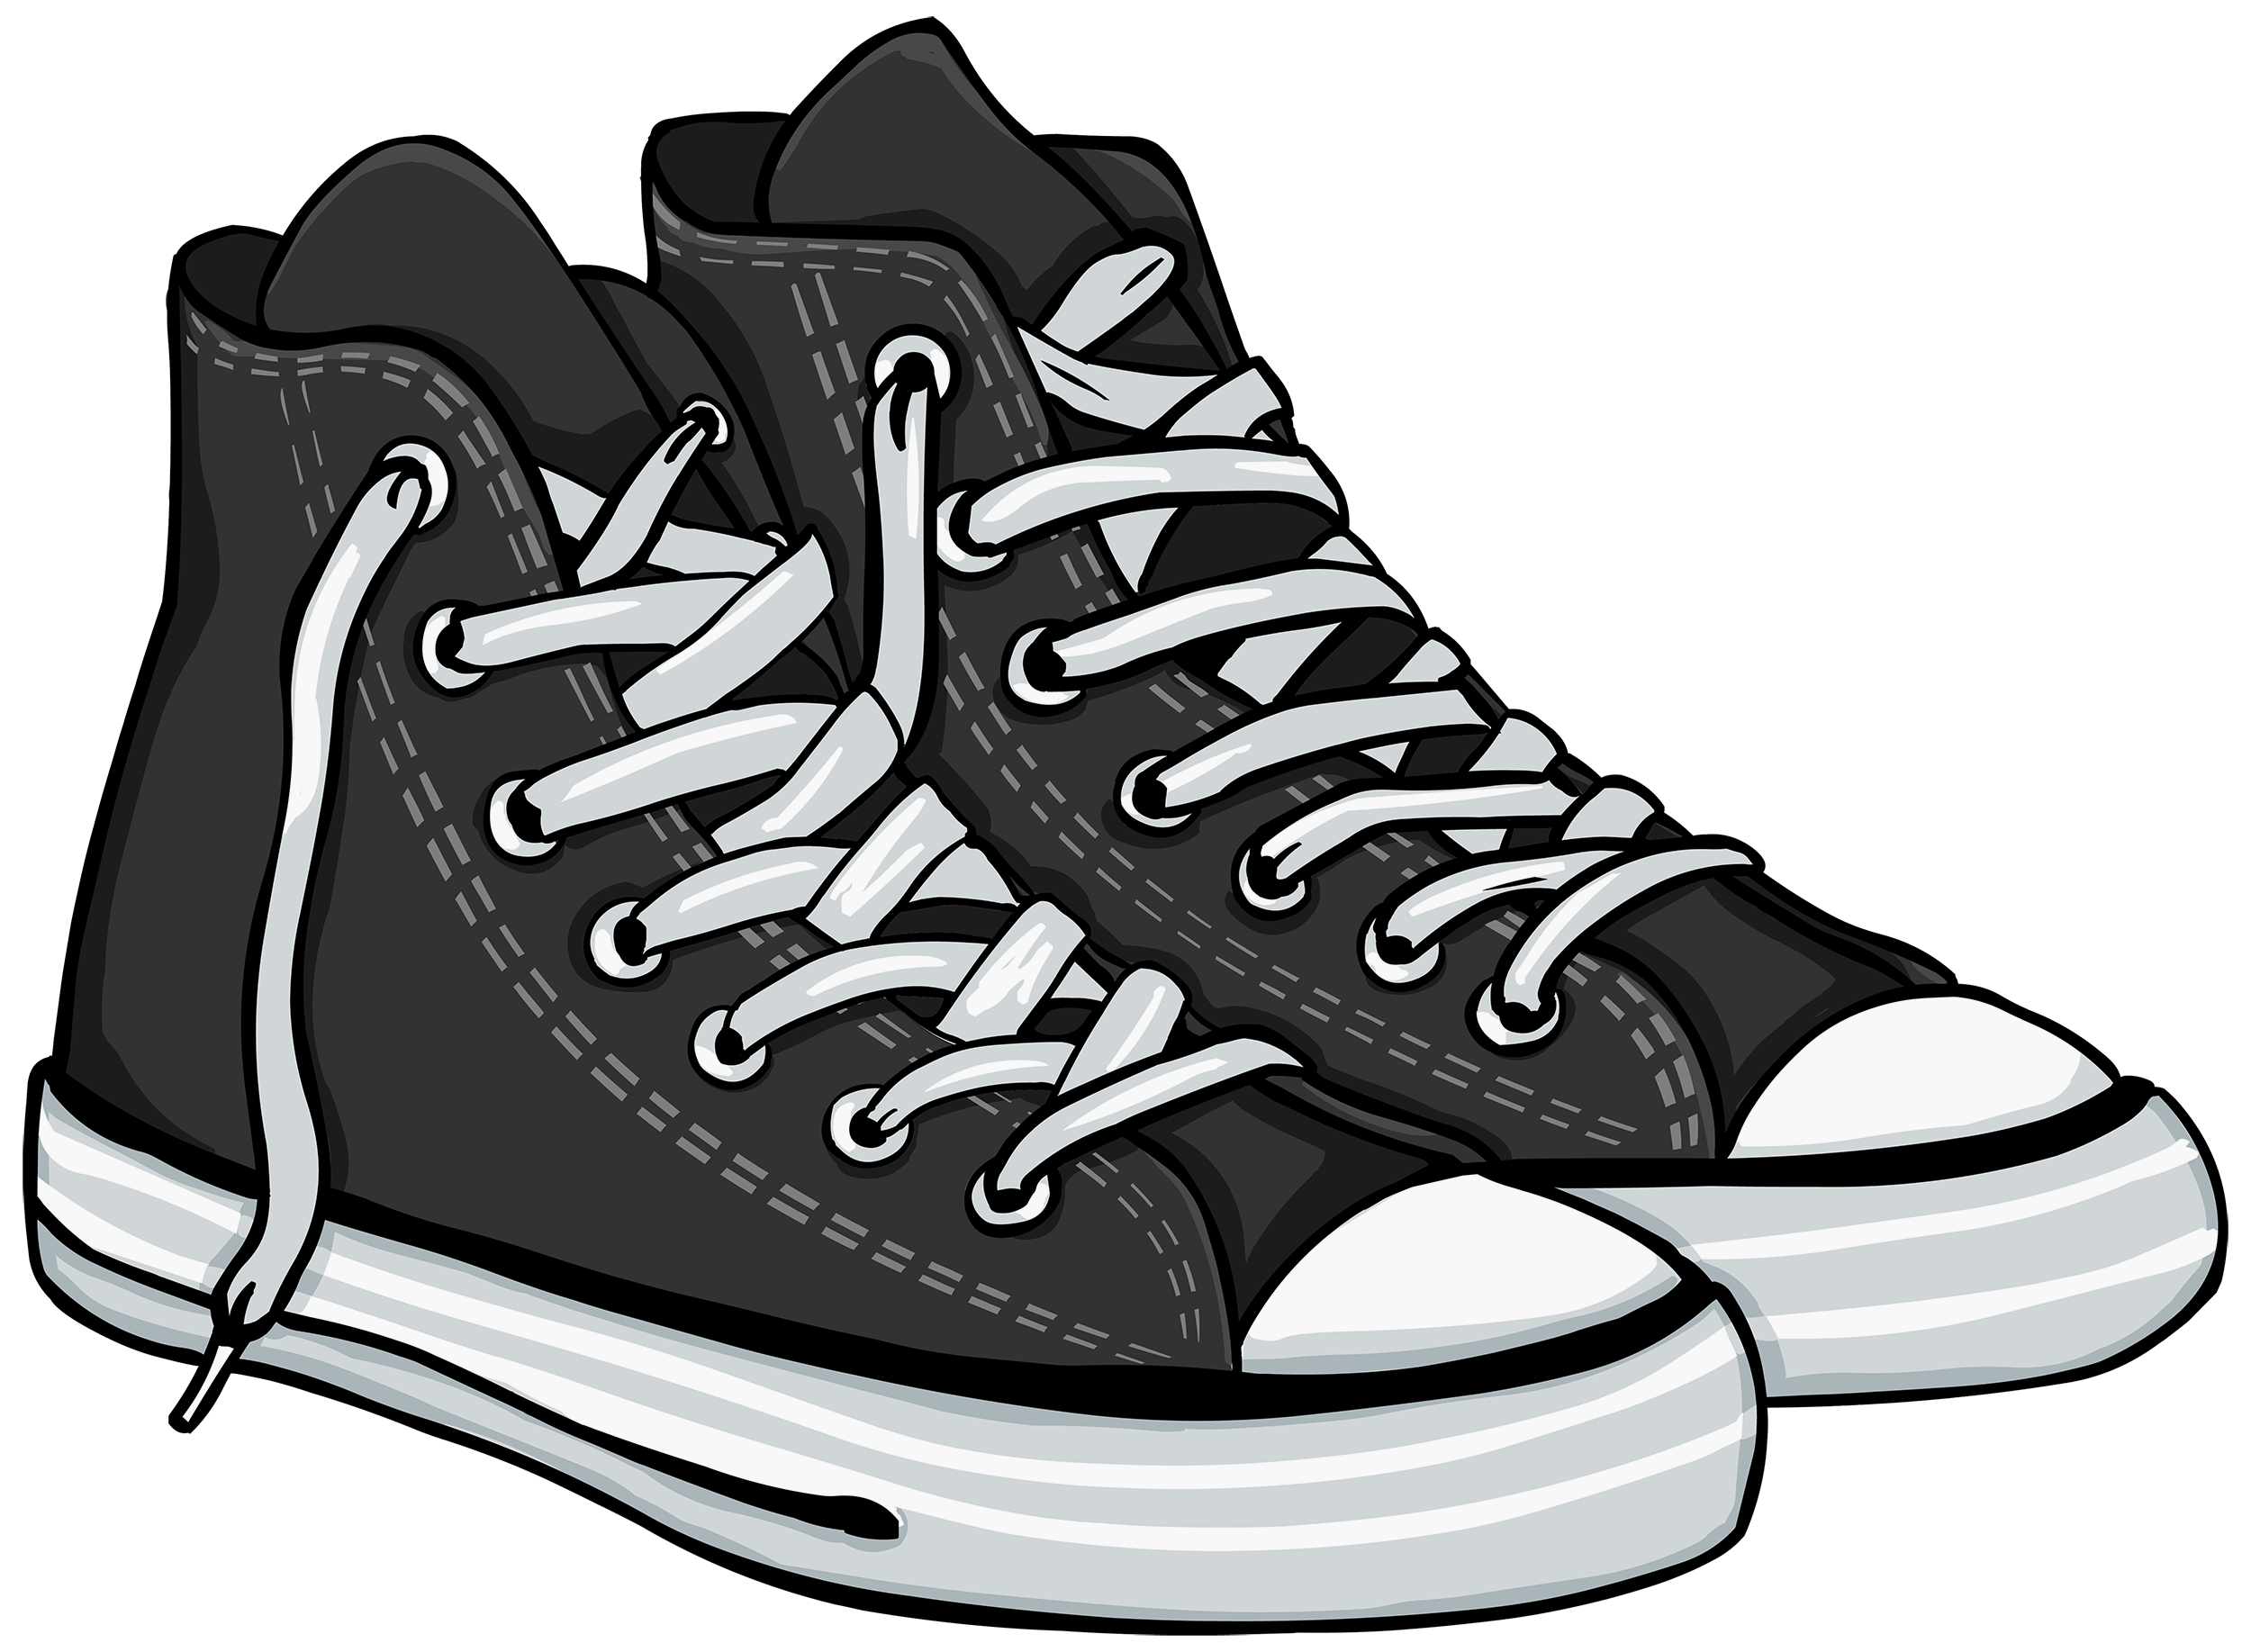 aa5f5ac1c4db27 Tennis shoes clipart black and white collection